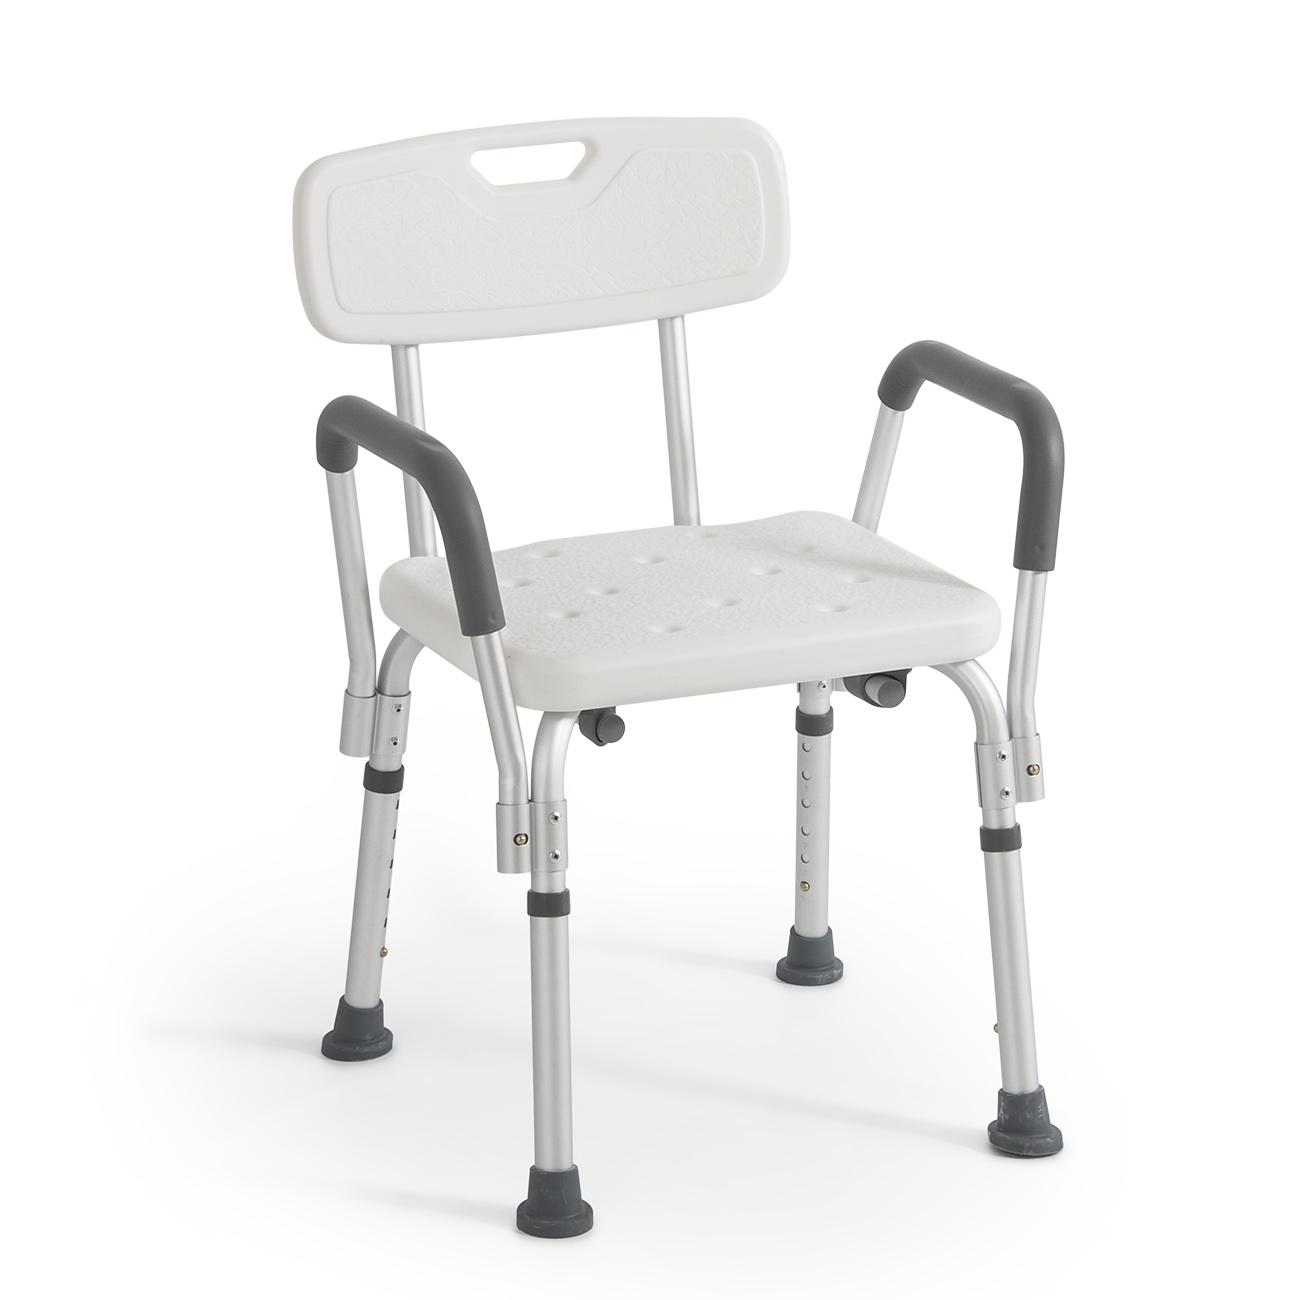 Medical Deluxe Shower Bath Chair Seat with Back & Arms, Adjustable ...